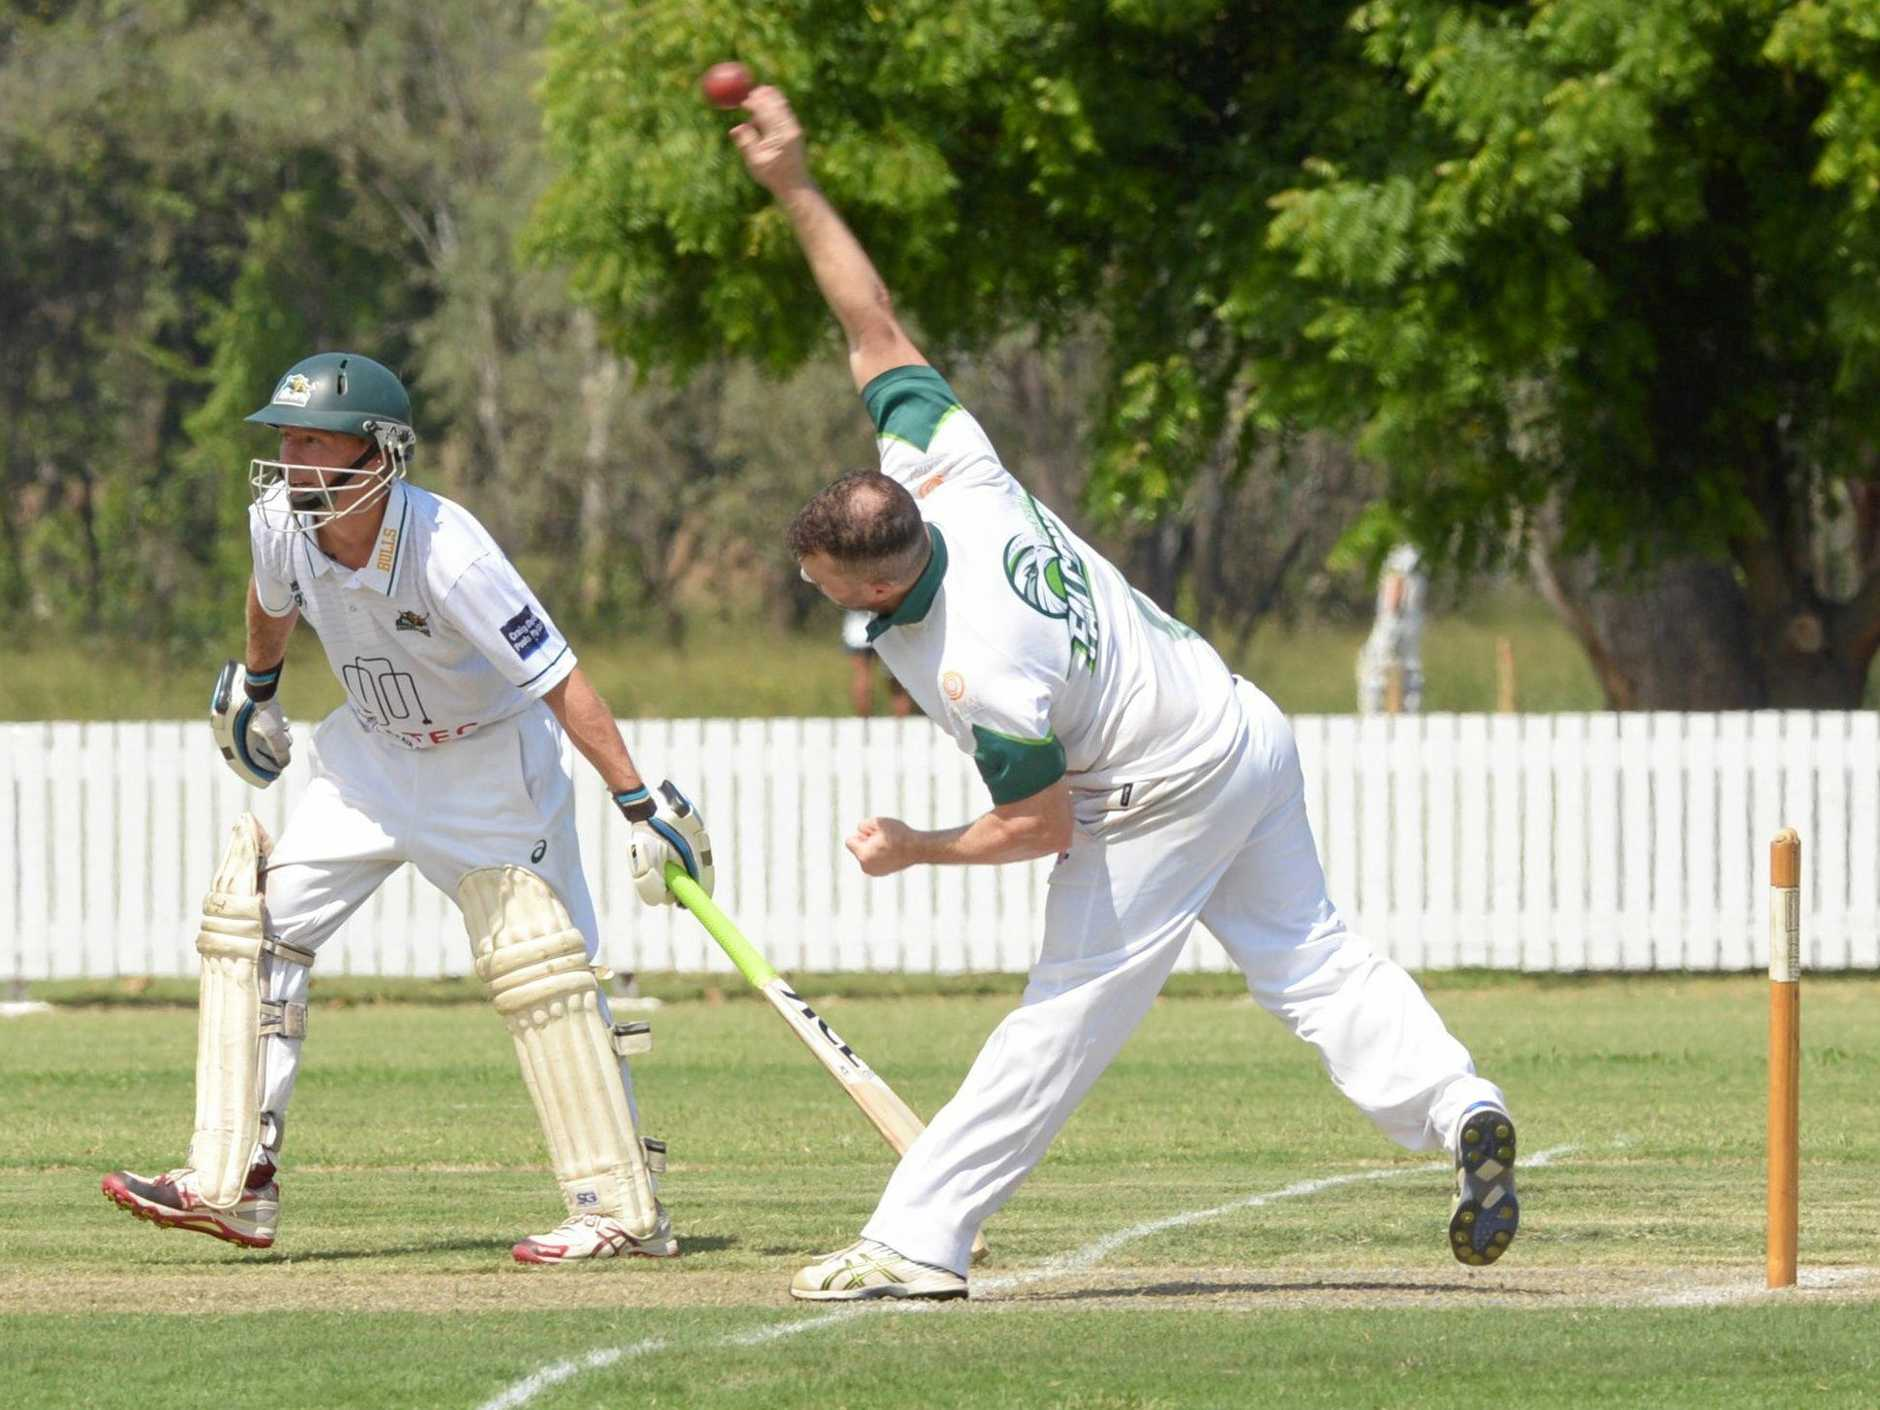 READY TO RUN: Gracemere's Aaron Harmsworth is poised for a quick run as Frenchville's Joe Burke bowls in the Capricorn Challenge game at the Rockhampton Cricket Grounds on Saturday